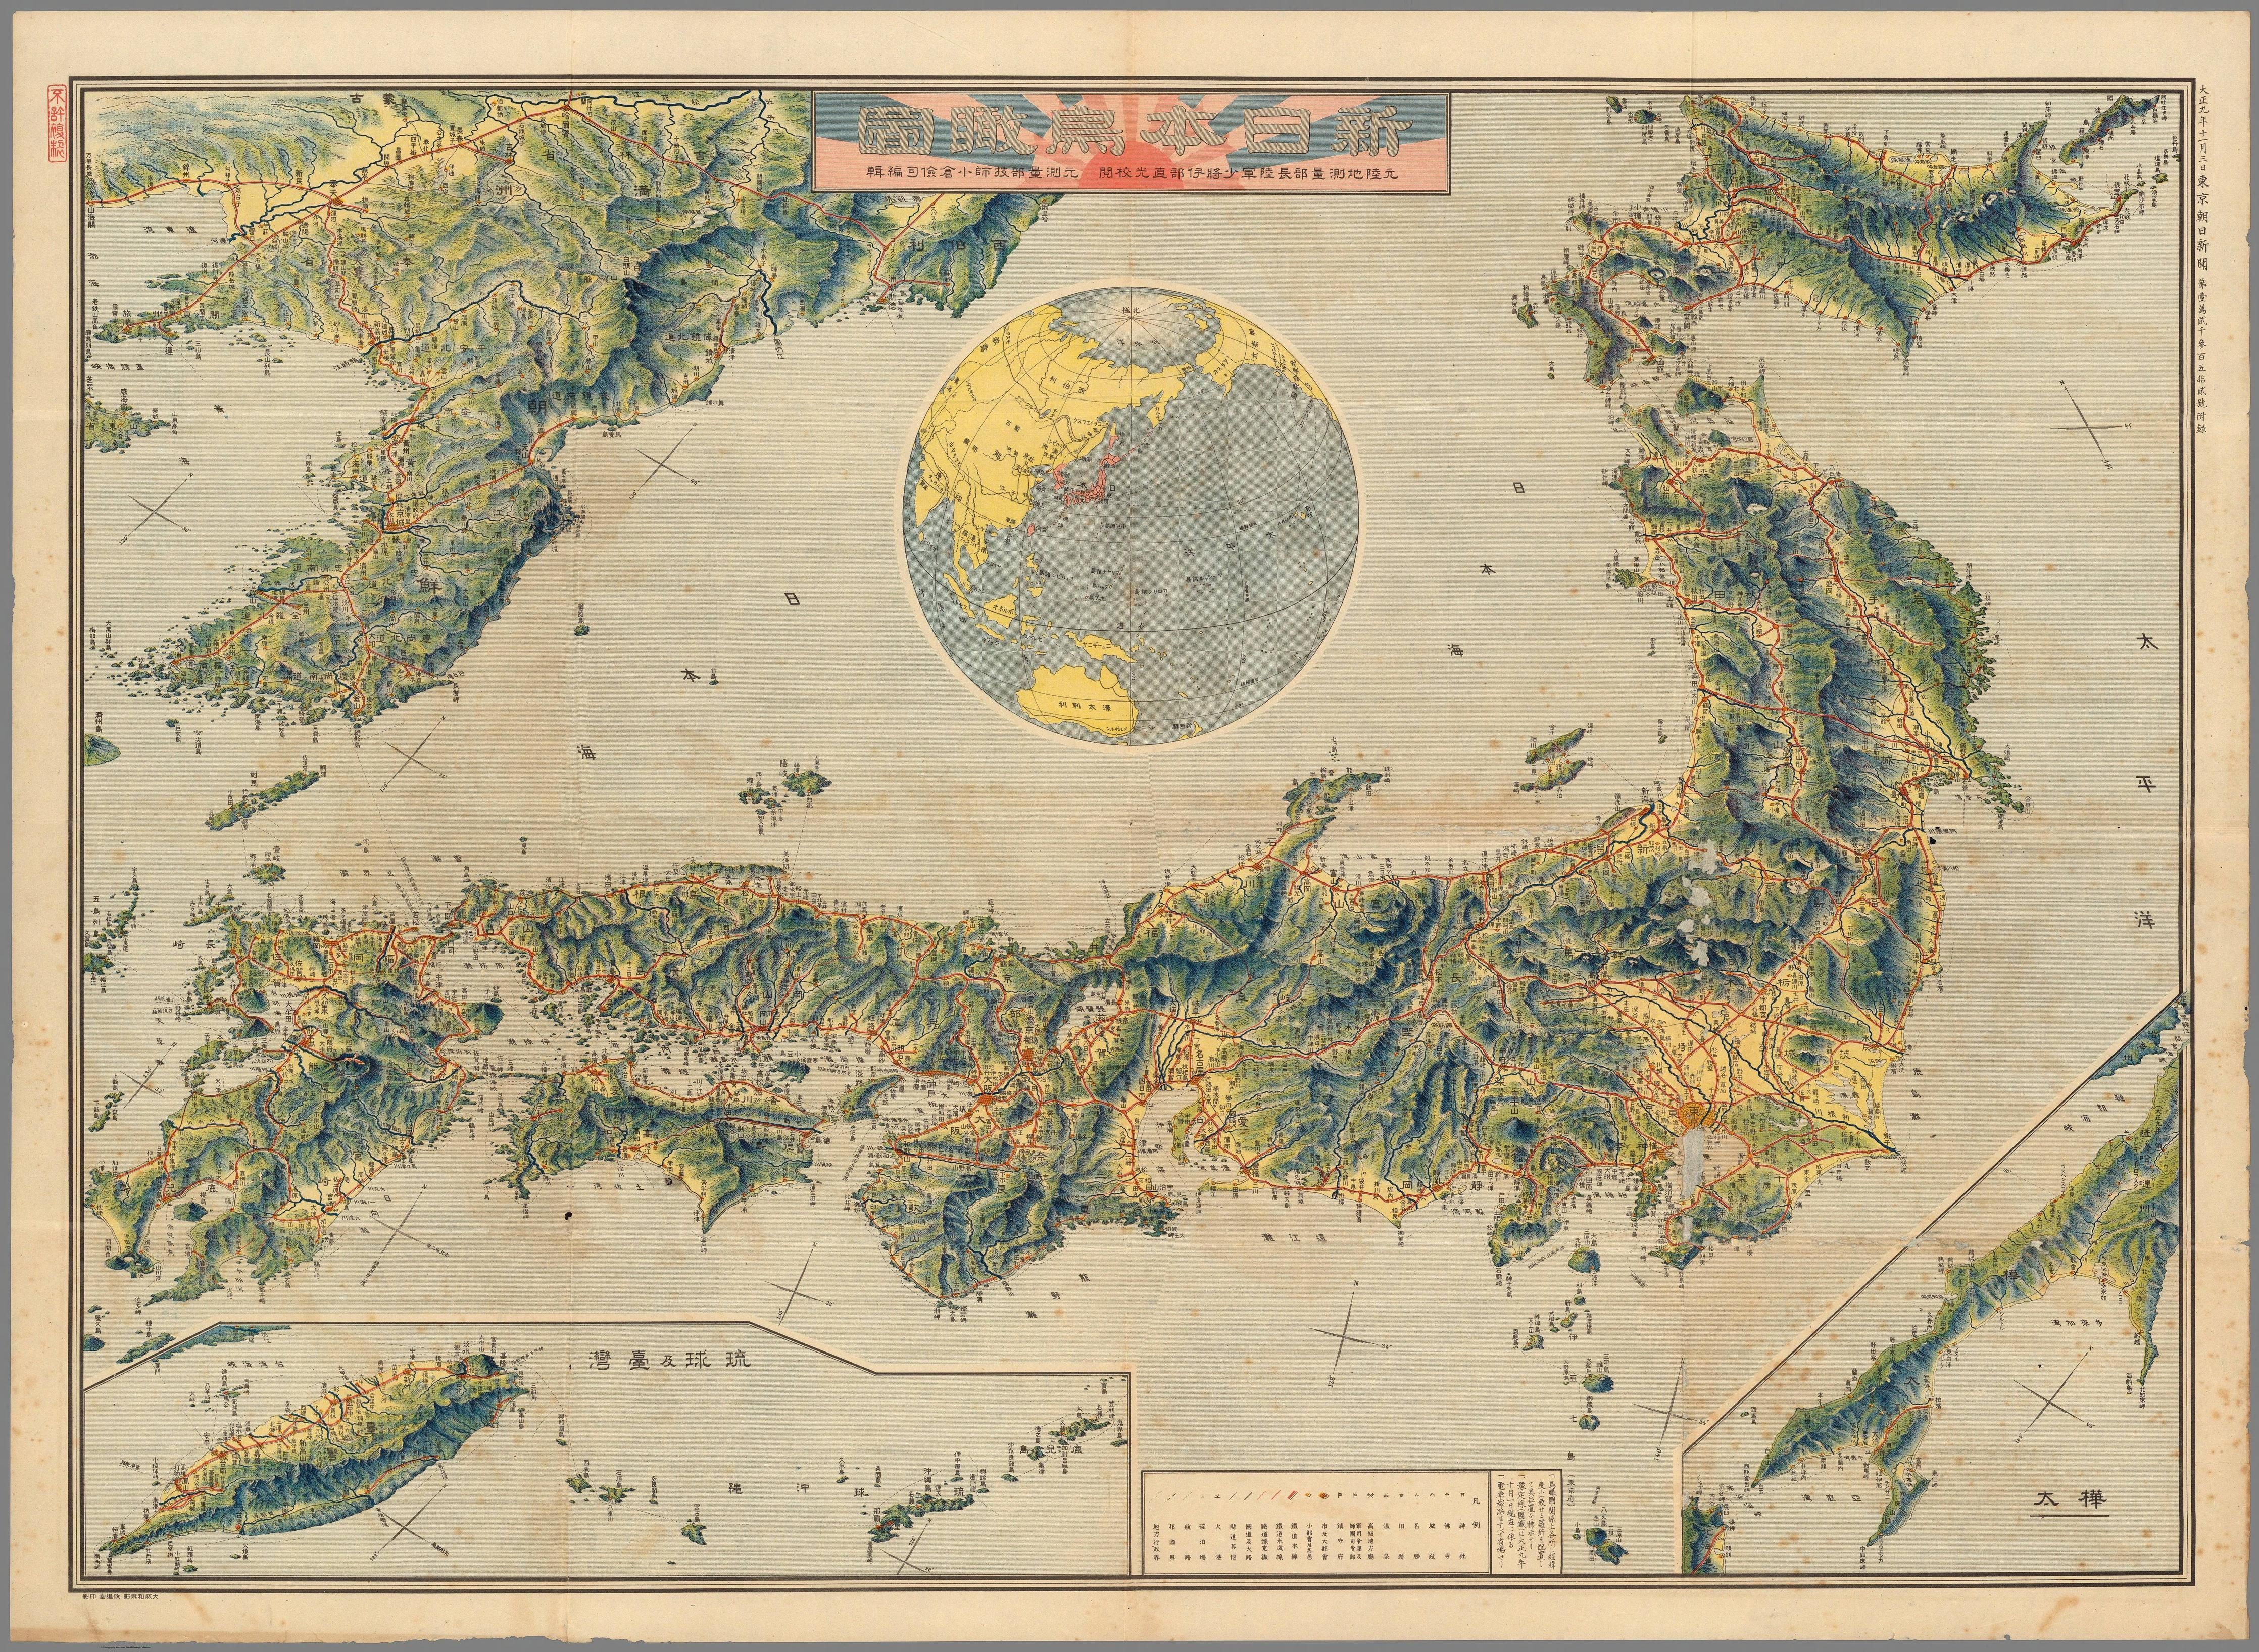 Bird s eye view map of Japan 1921 map japan korea nippon